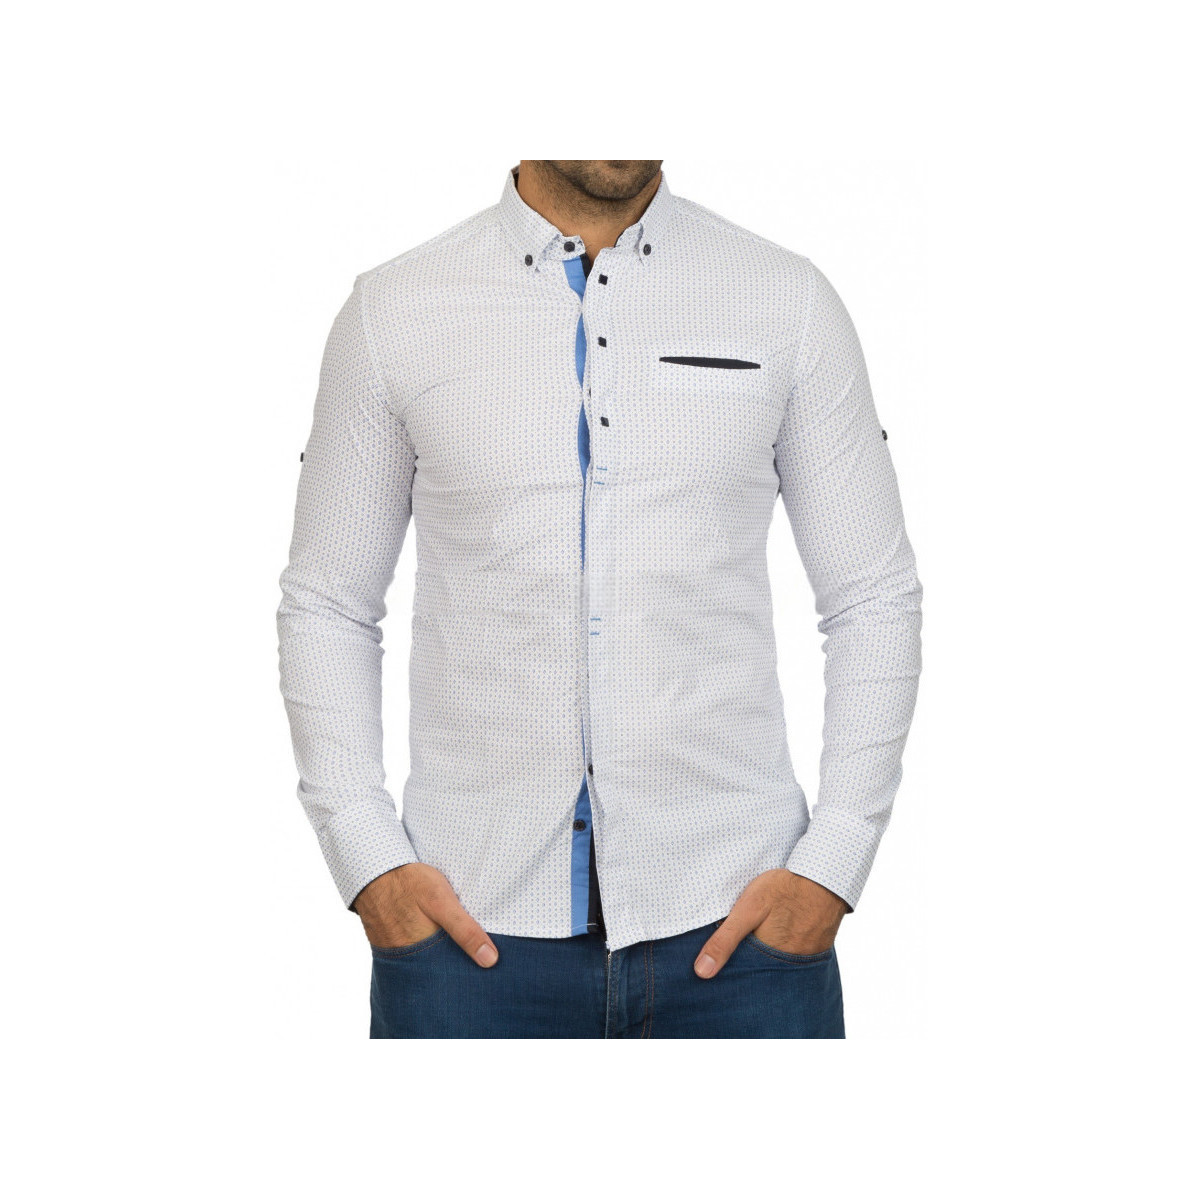 Beststyle Chemise homme classe blanche Blanc